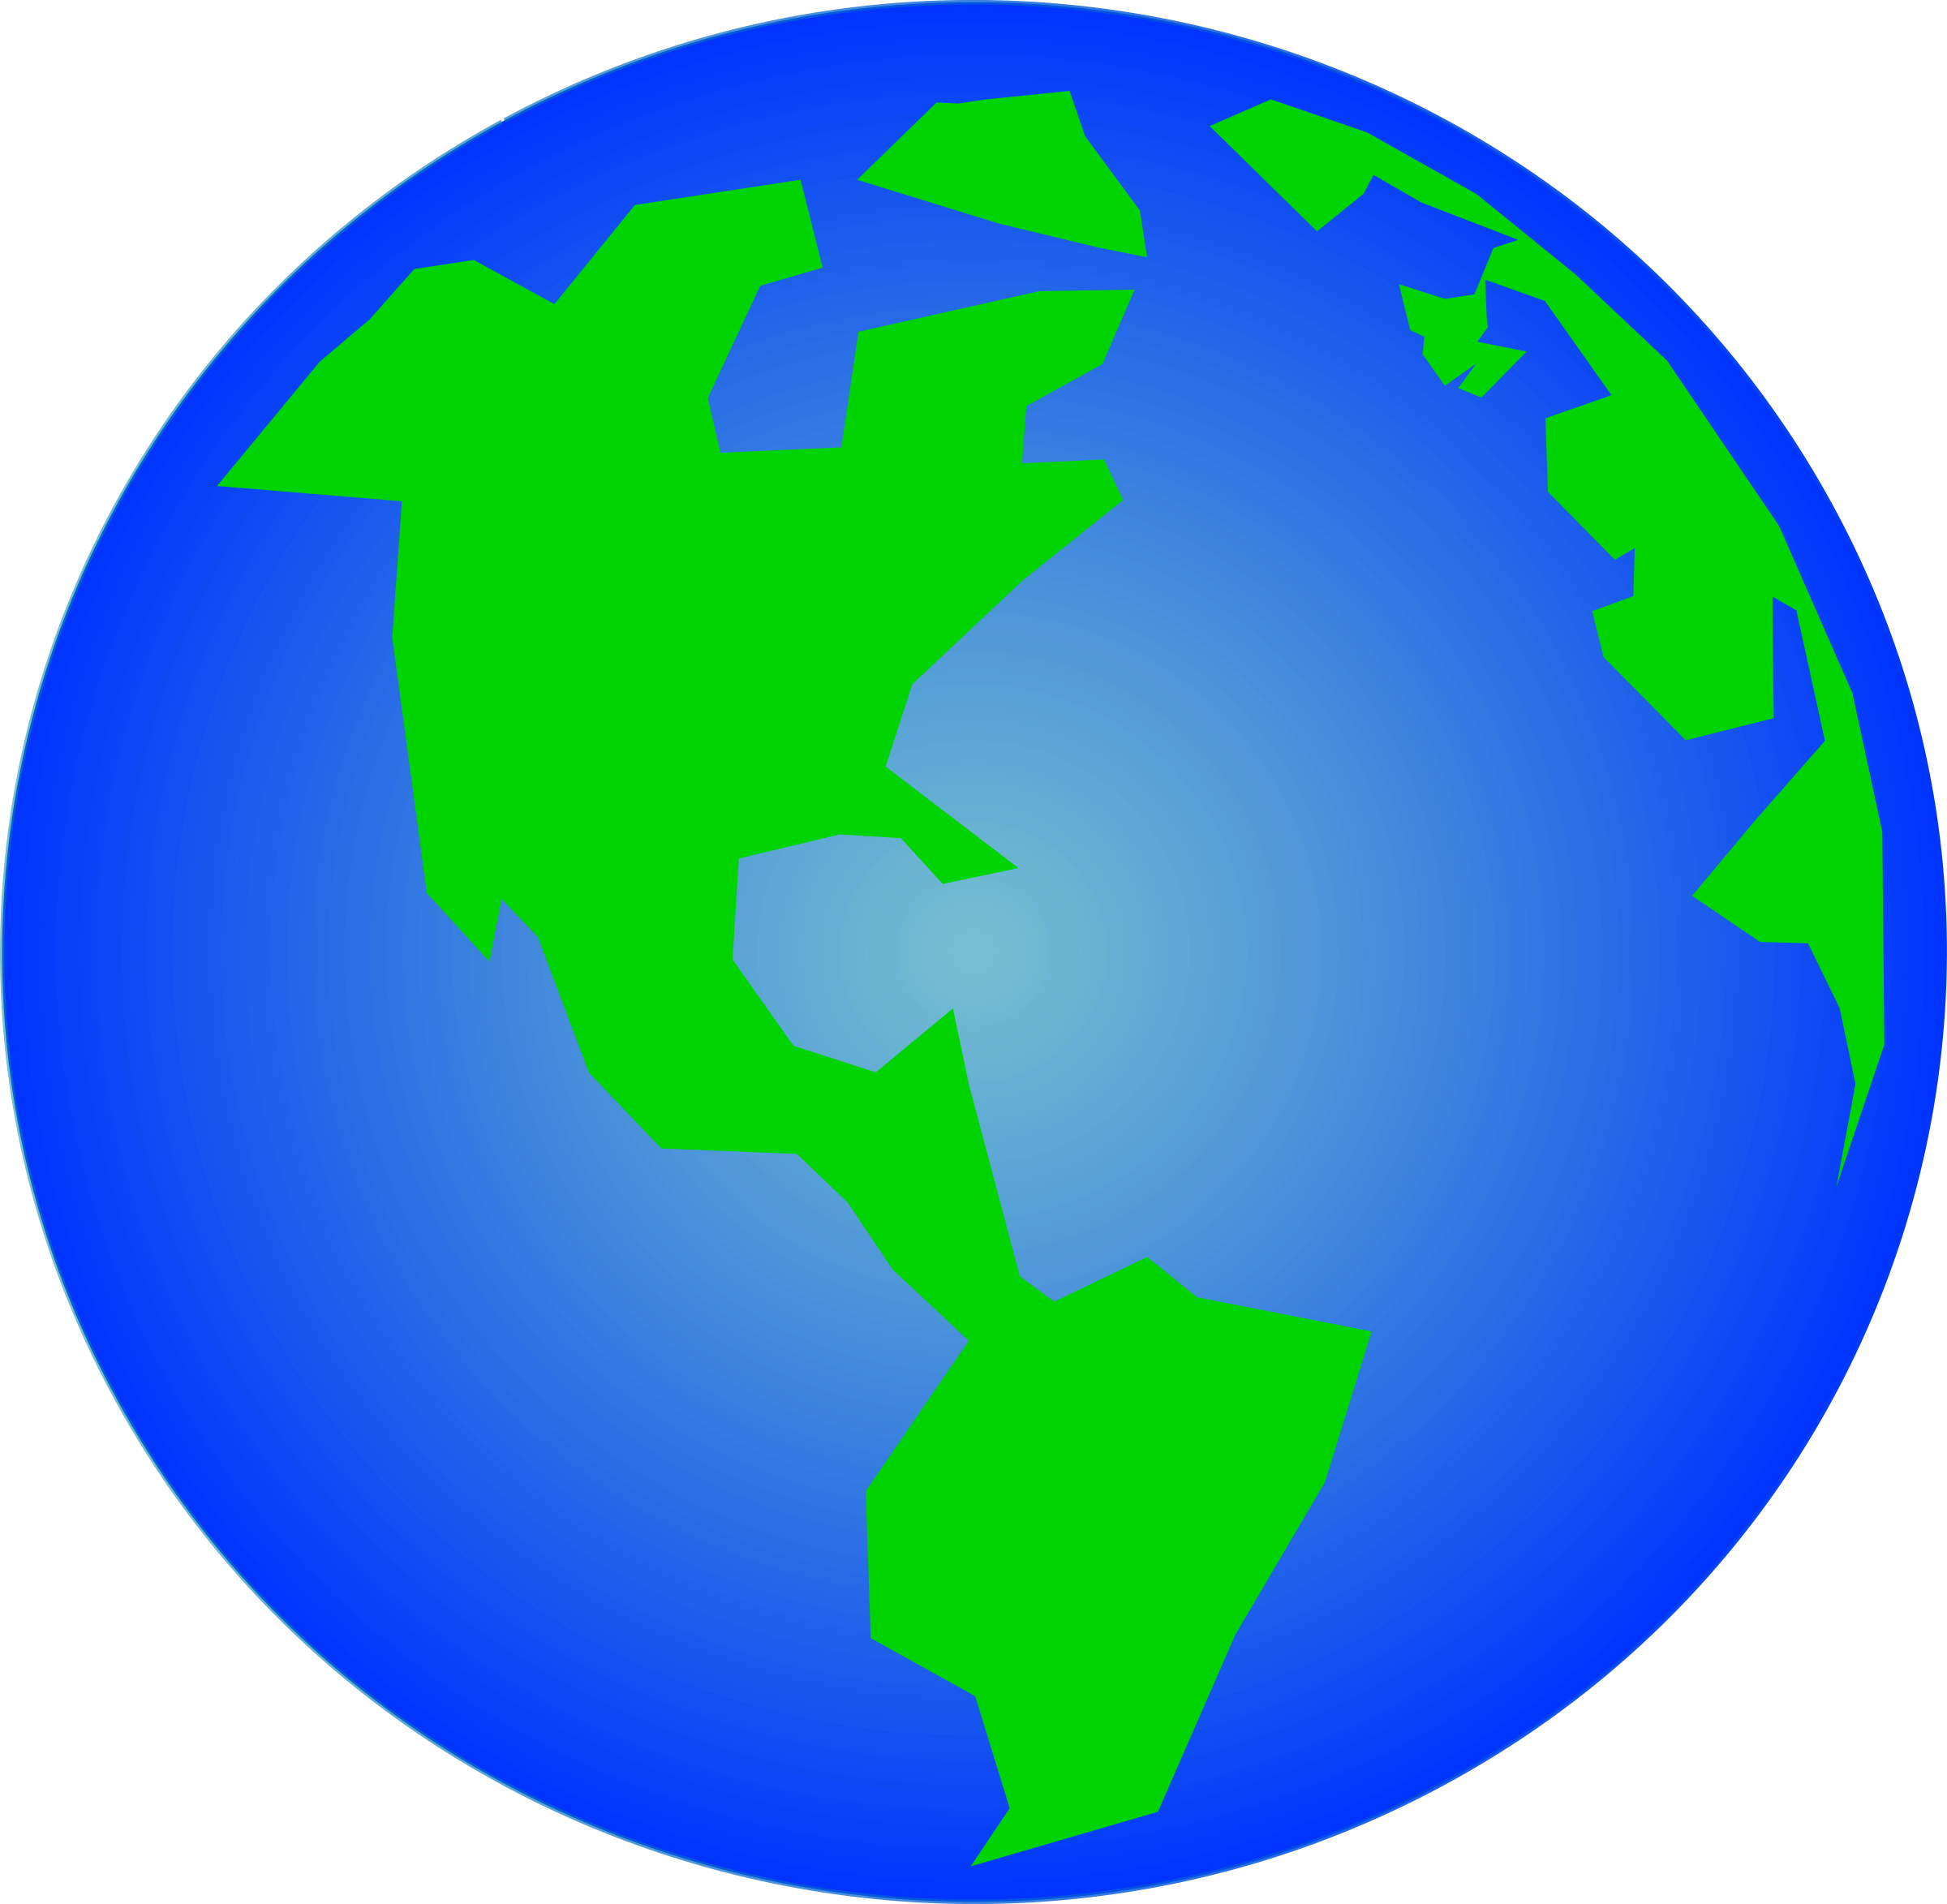 Big image png. Clipart earth space